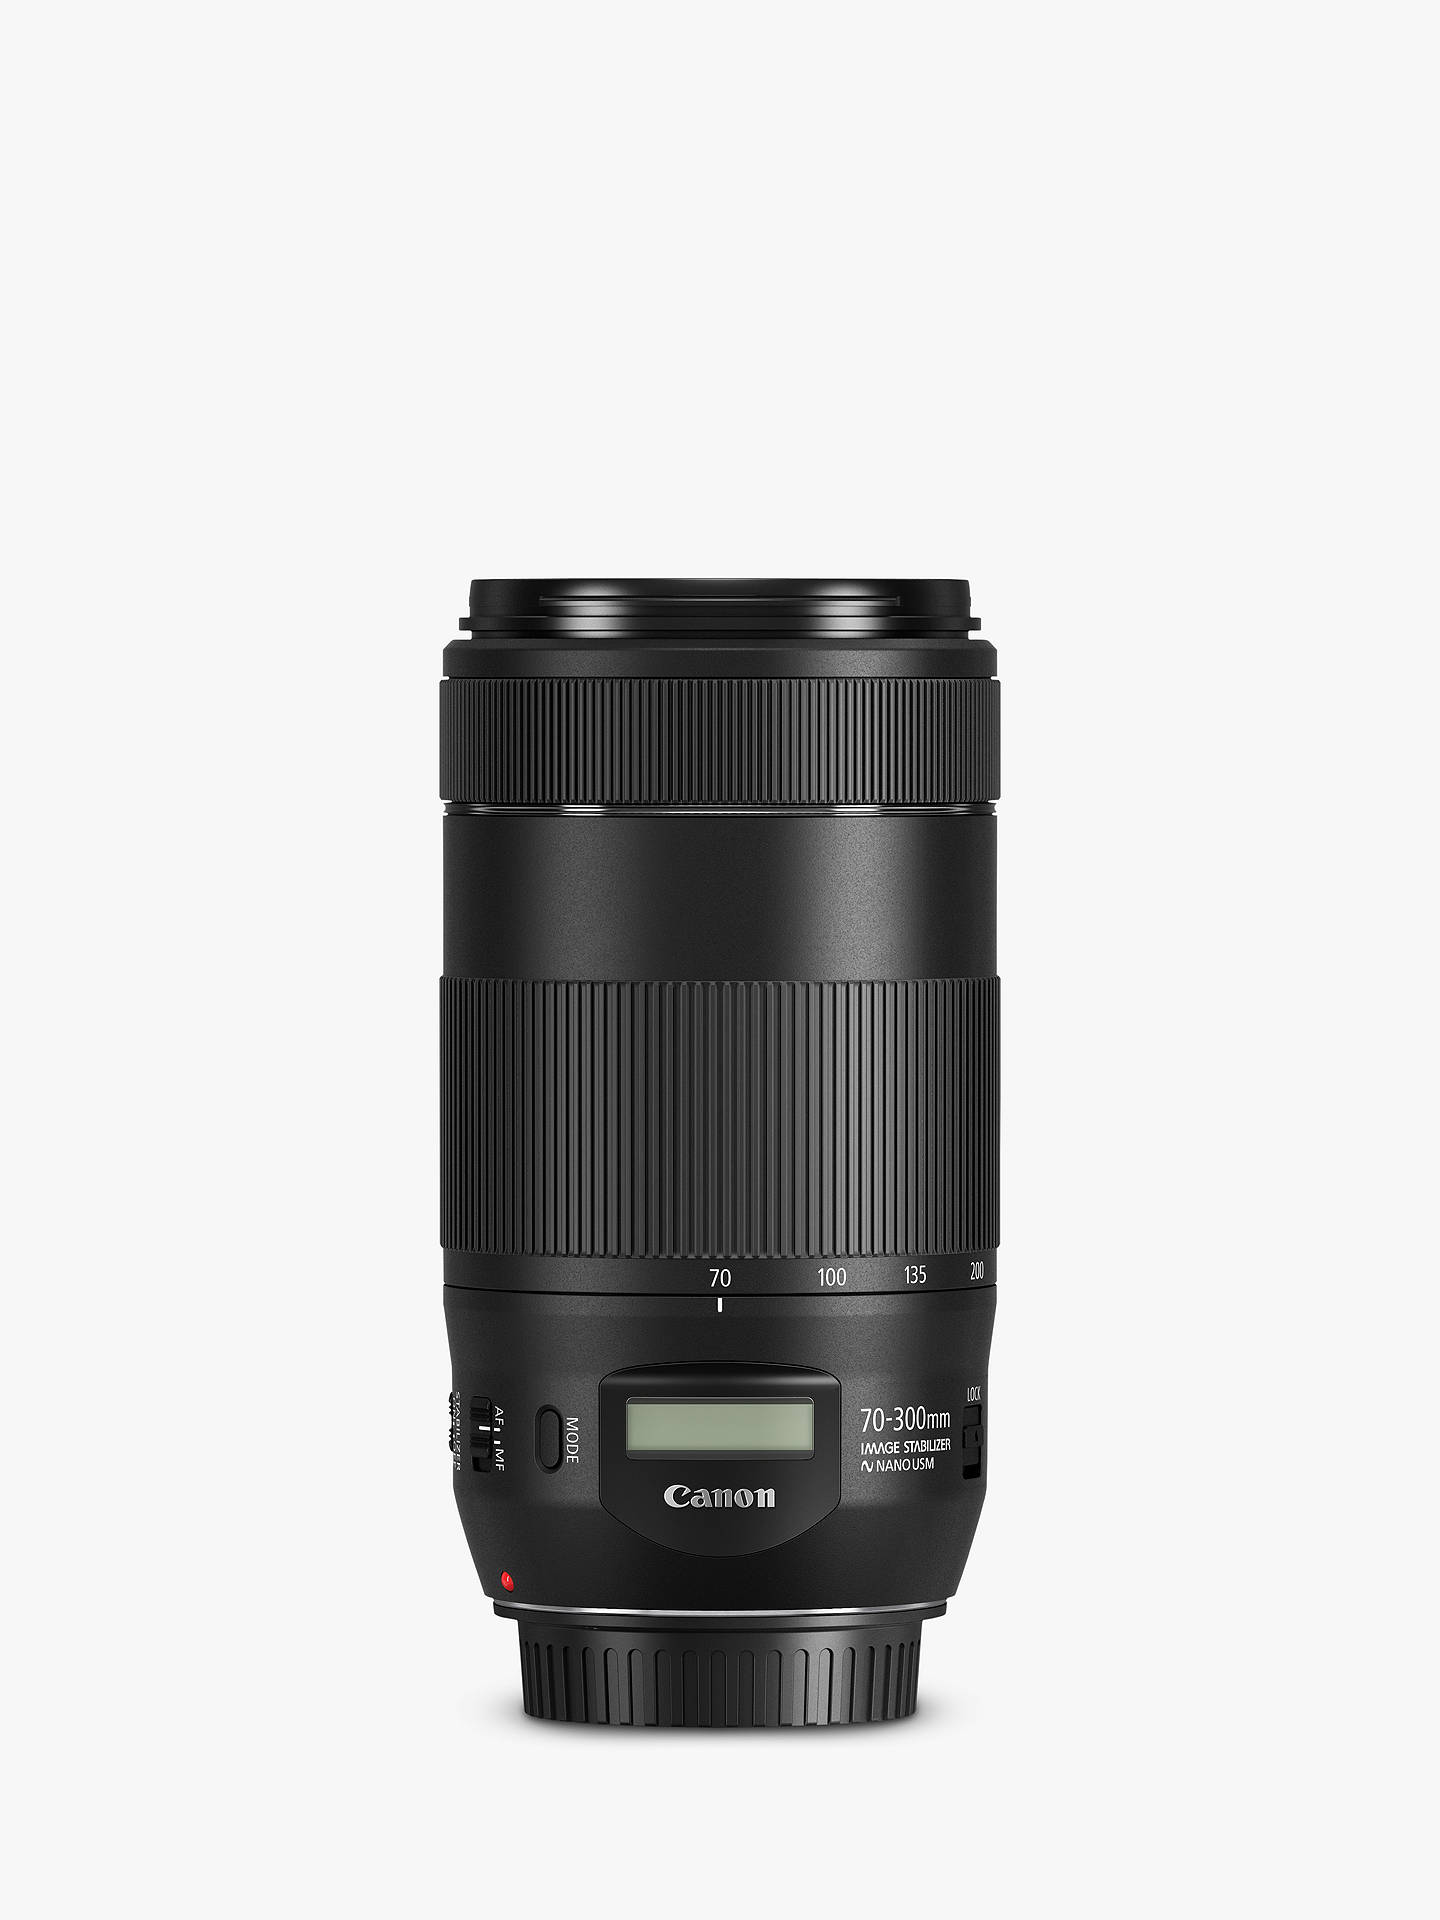 BuyCanon EF 70-300mm f/4-5.6 IS II USM Telephoto Lens Online at johnlewis.com